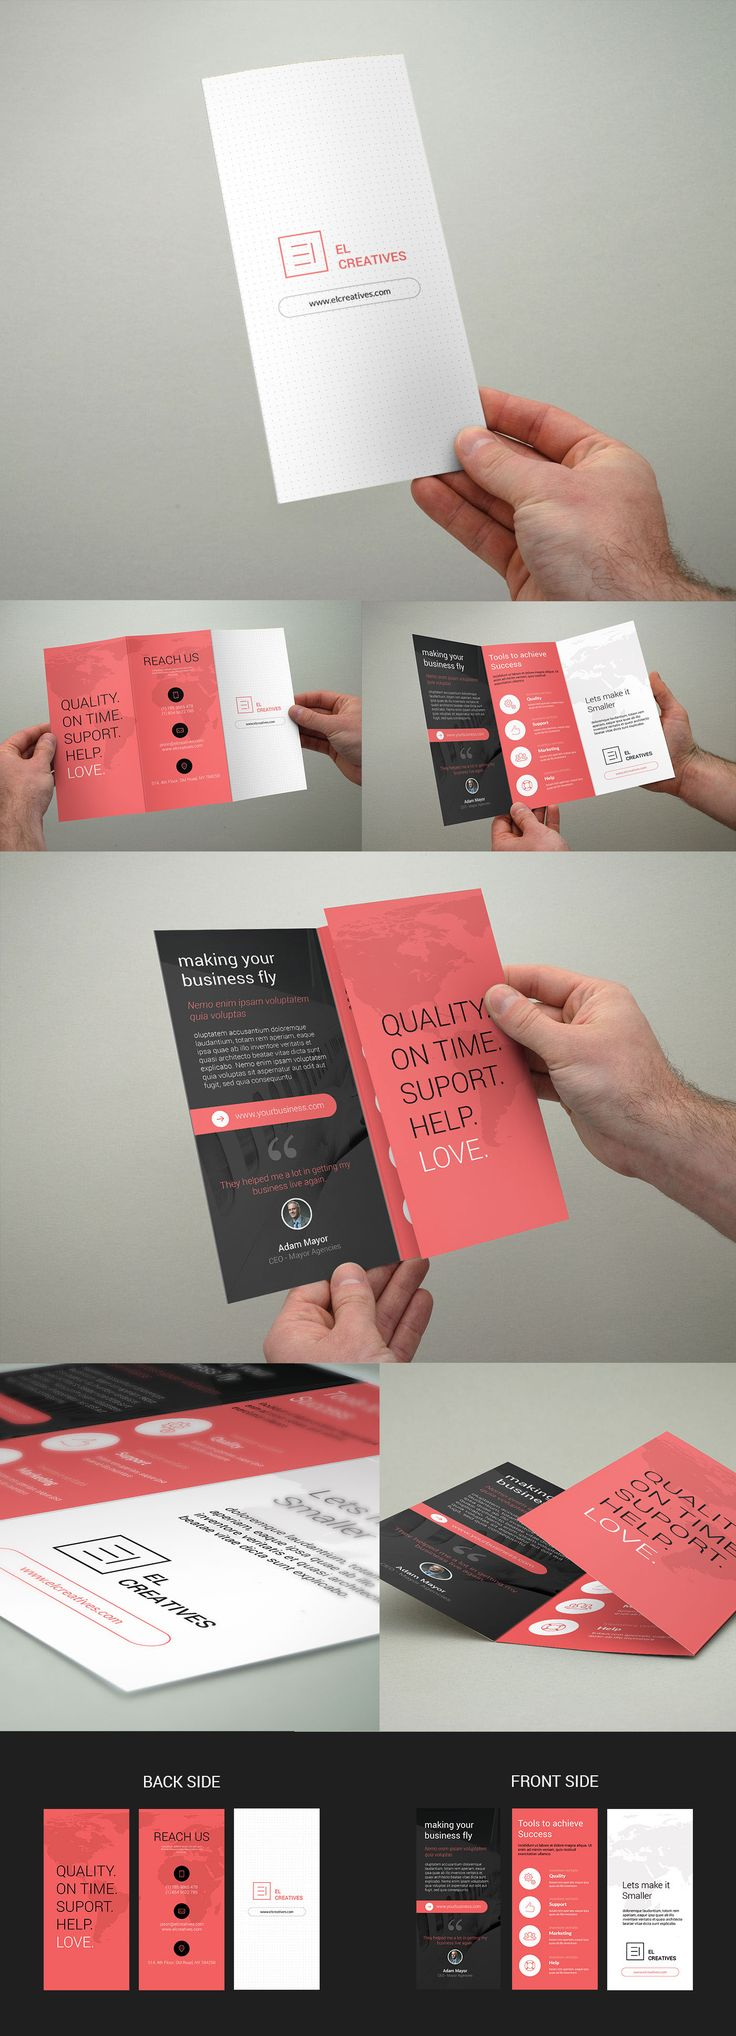 This brochure has a really good contrast. The use of the red, black, and white colors really makes it simple, yet stand out. It is easy to read and scan from page to page. It caught my eye when I first saw it.   Source: Bouncy Studio on Behance https://www.behance.net/gallery/26140923/Minimal-Corporate-Trifold-Brochure